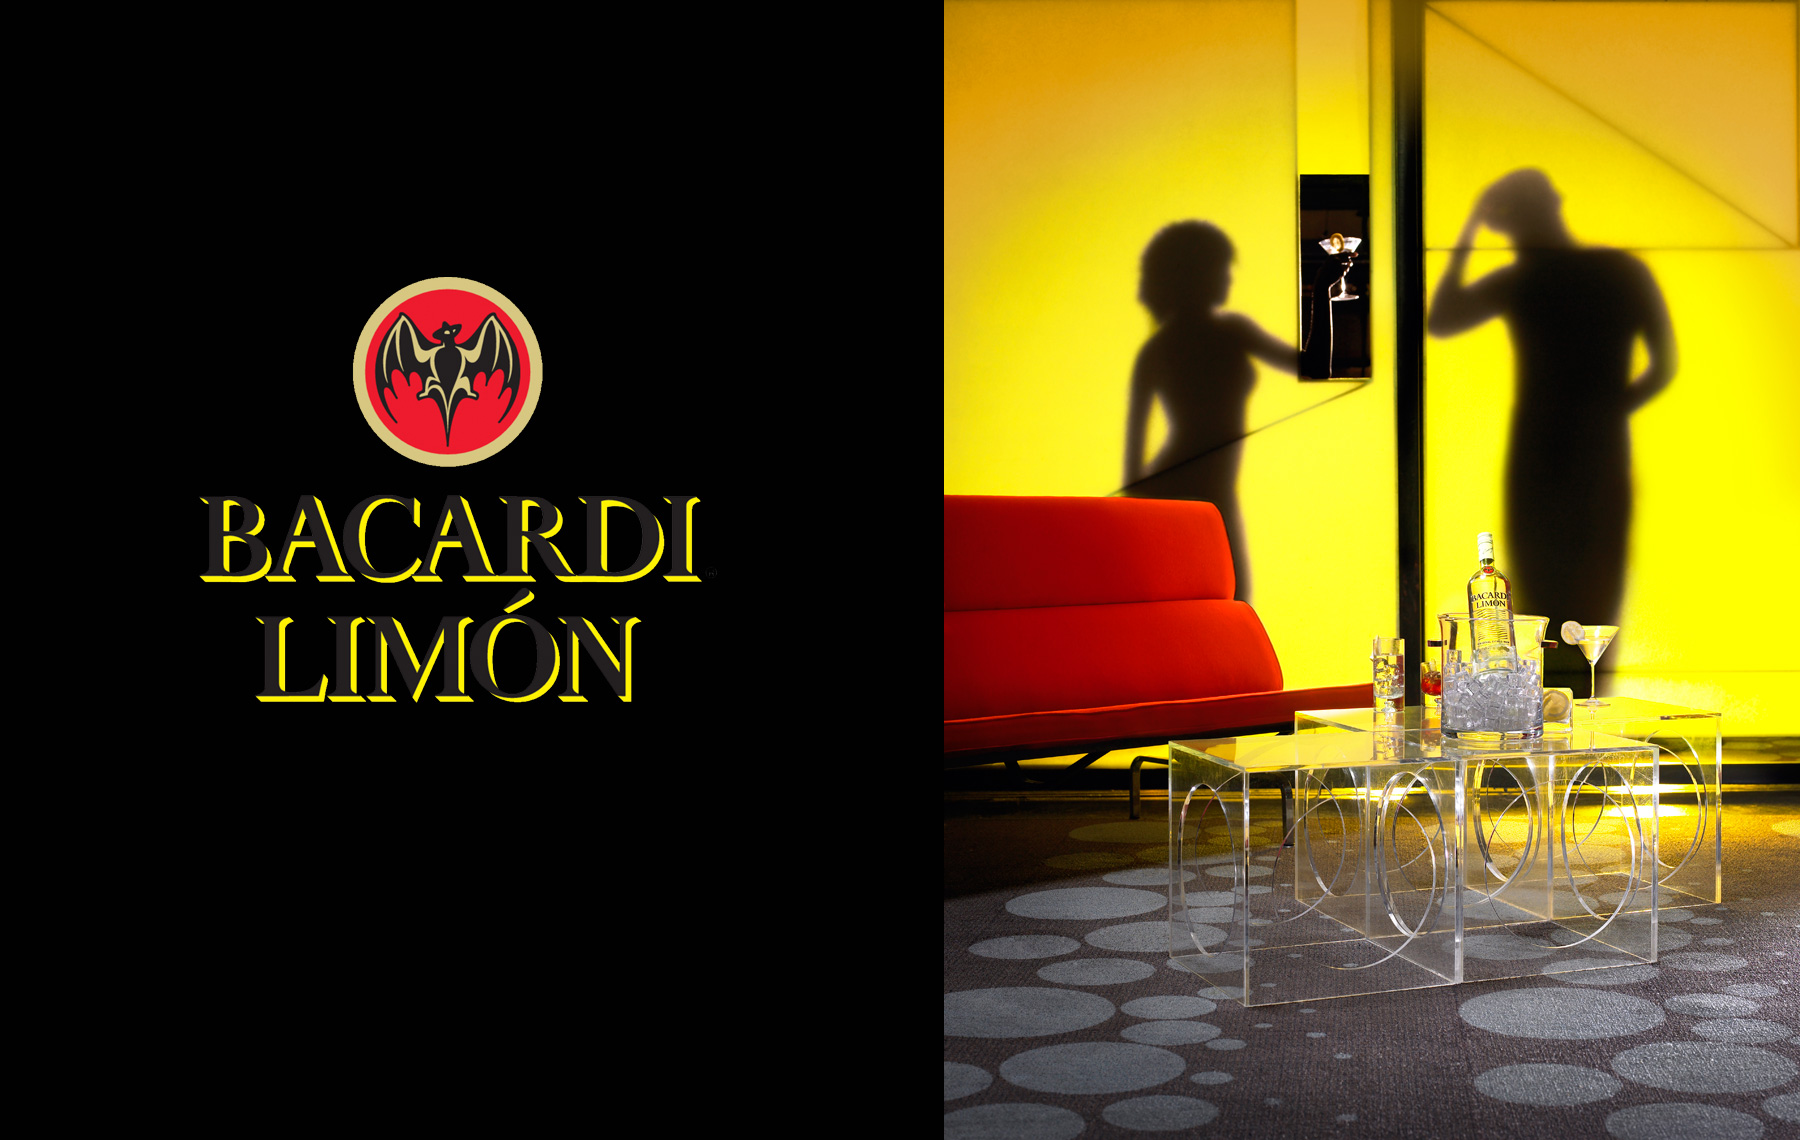 Bacardi_Silhouette_BACKGROUND_ONLY_FLAT